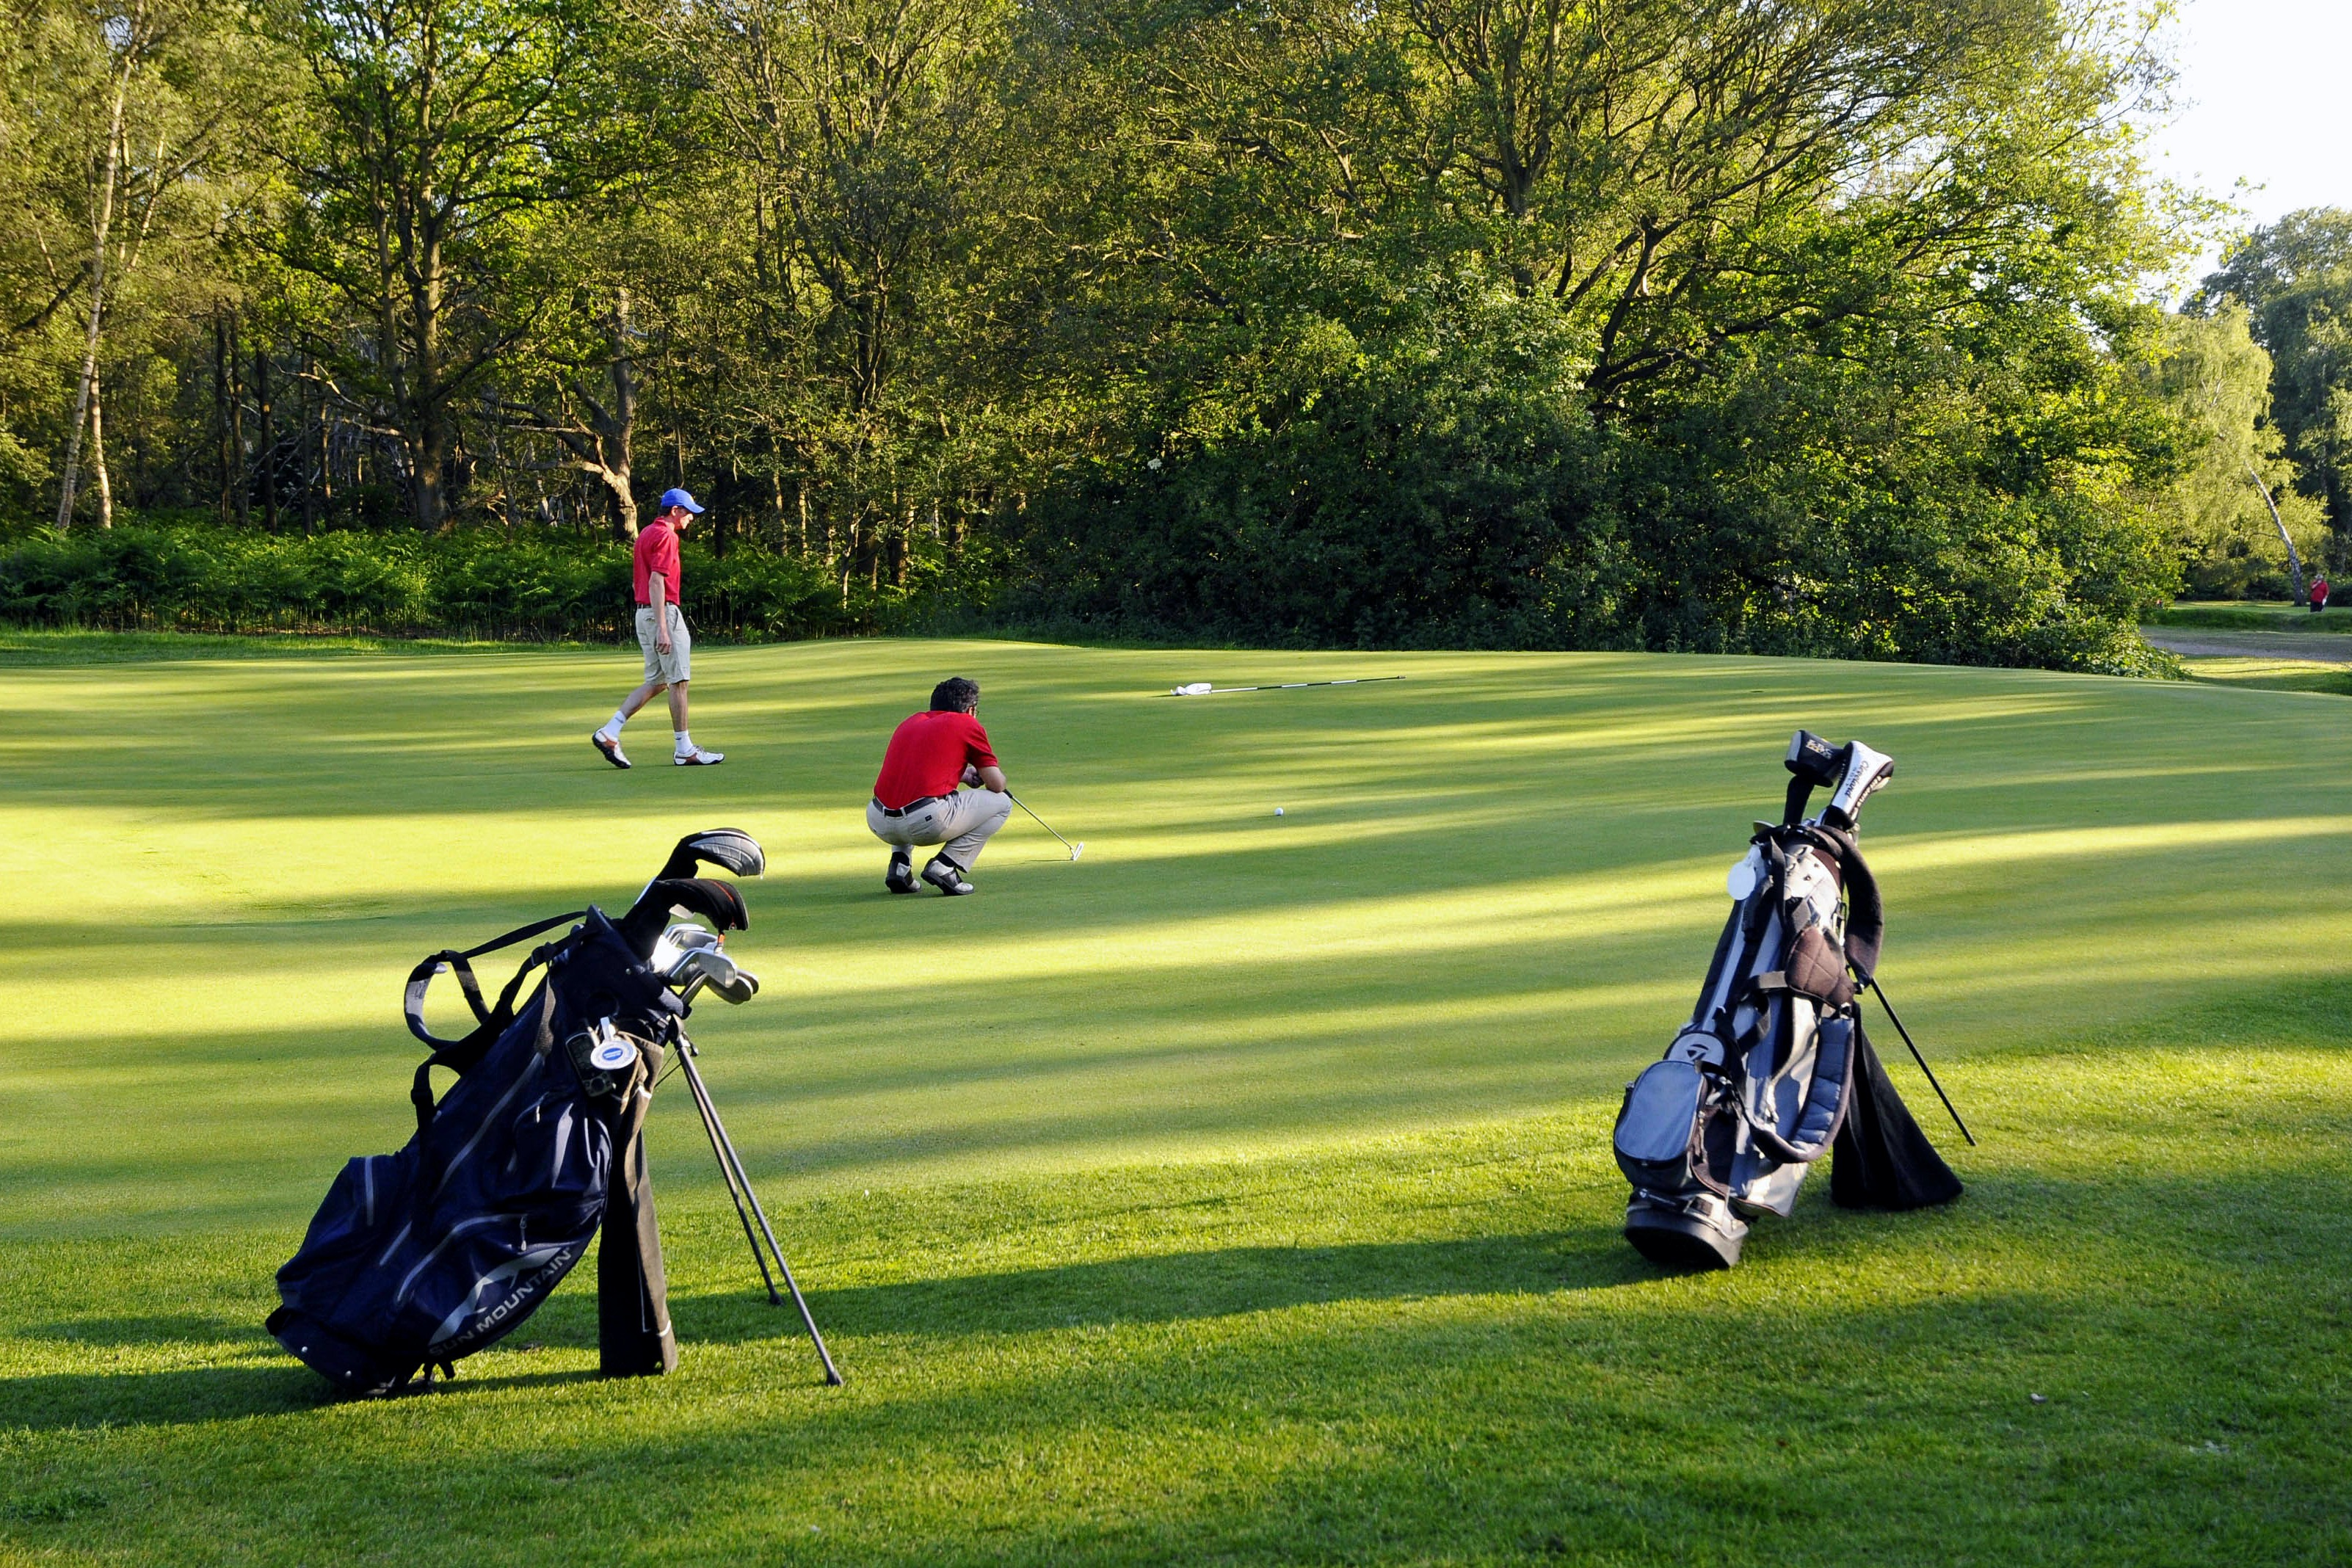 Enjoy 10-holes of fun competition